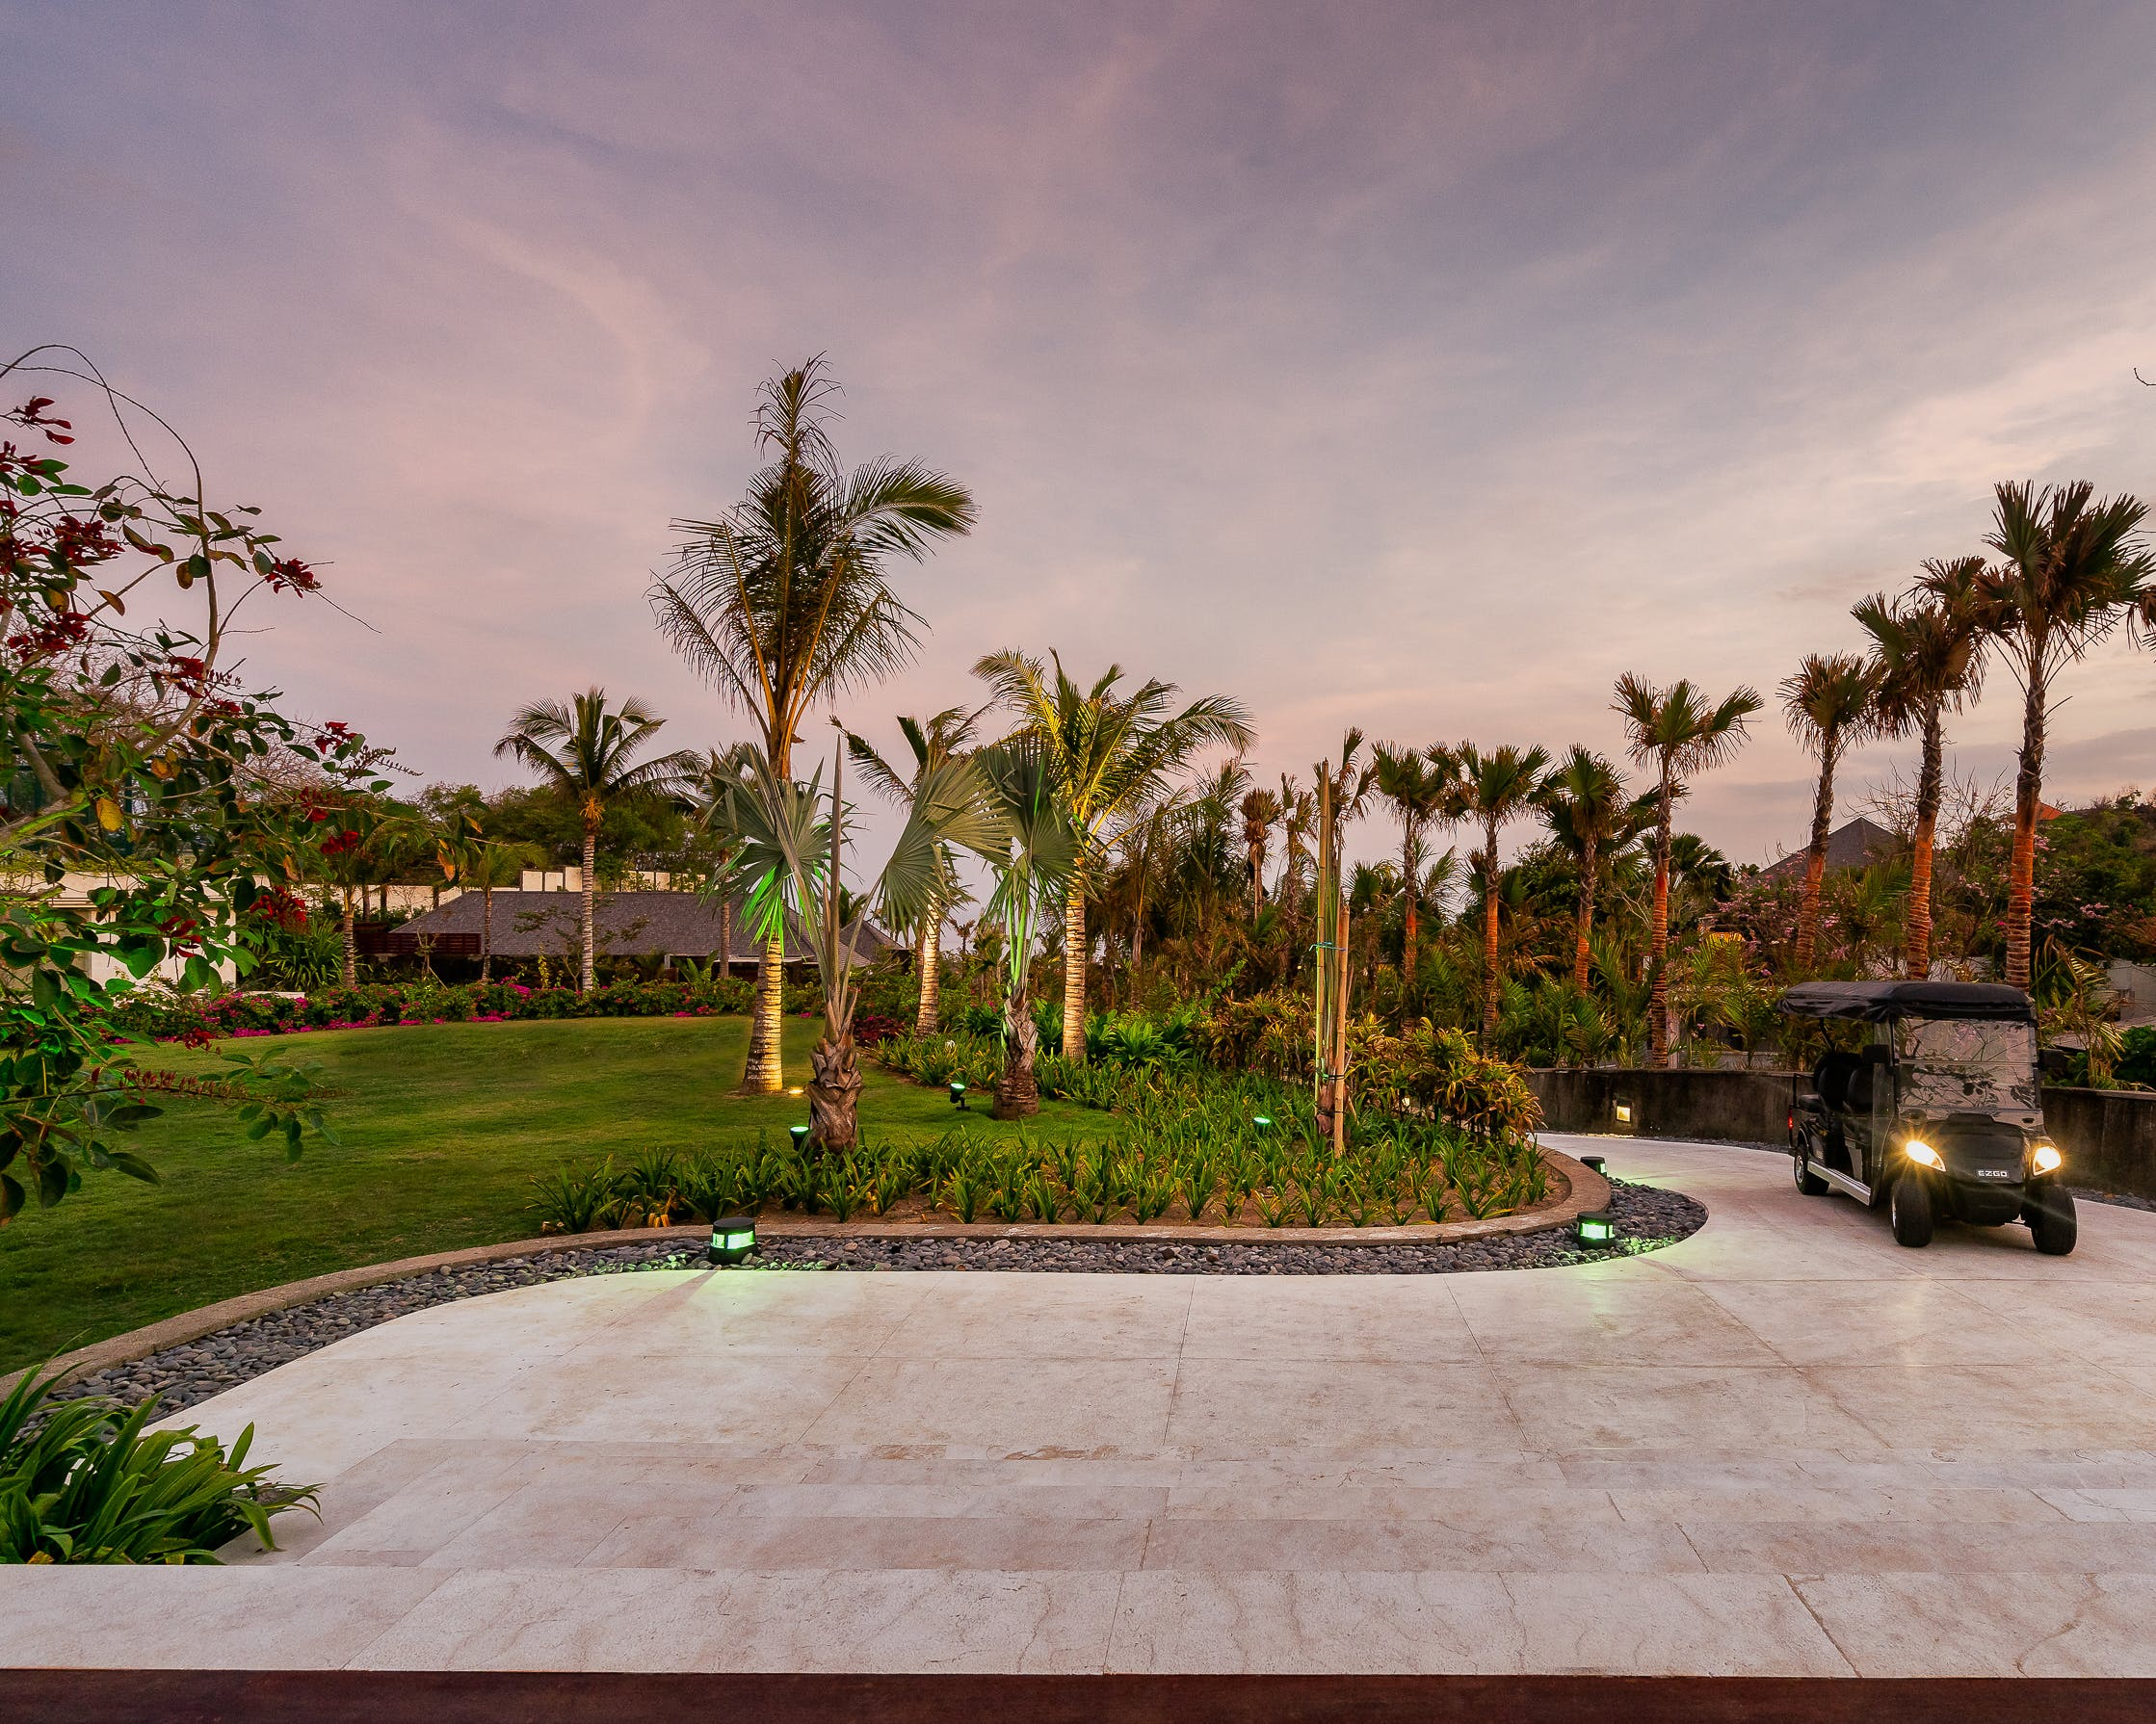 The Ridge at The edge Luxury Villa Resort, Uluwatu Bali